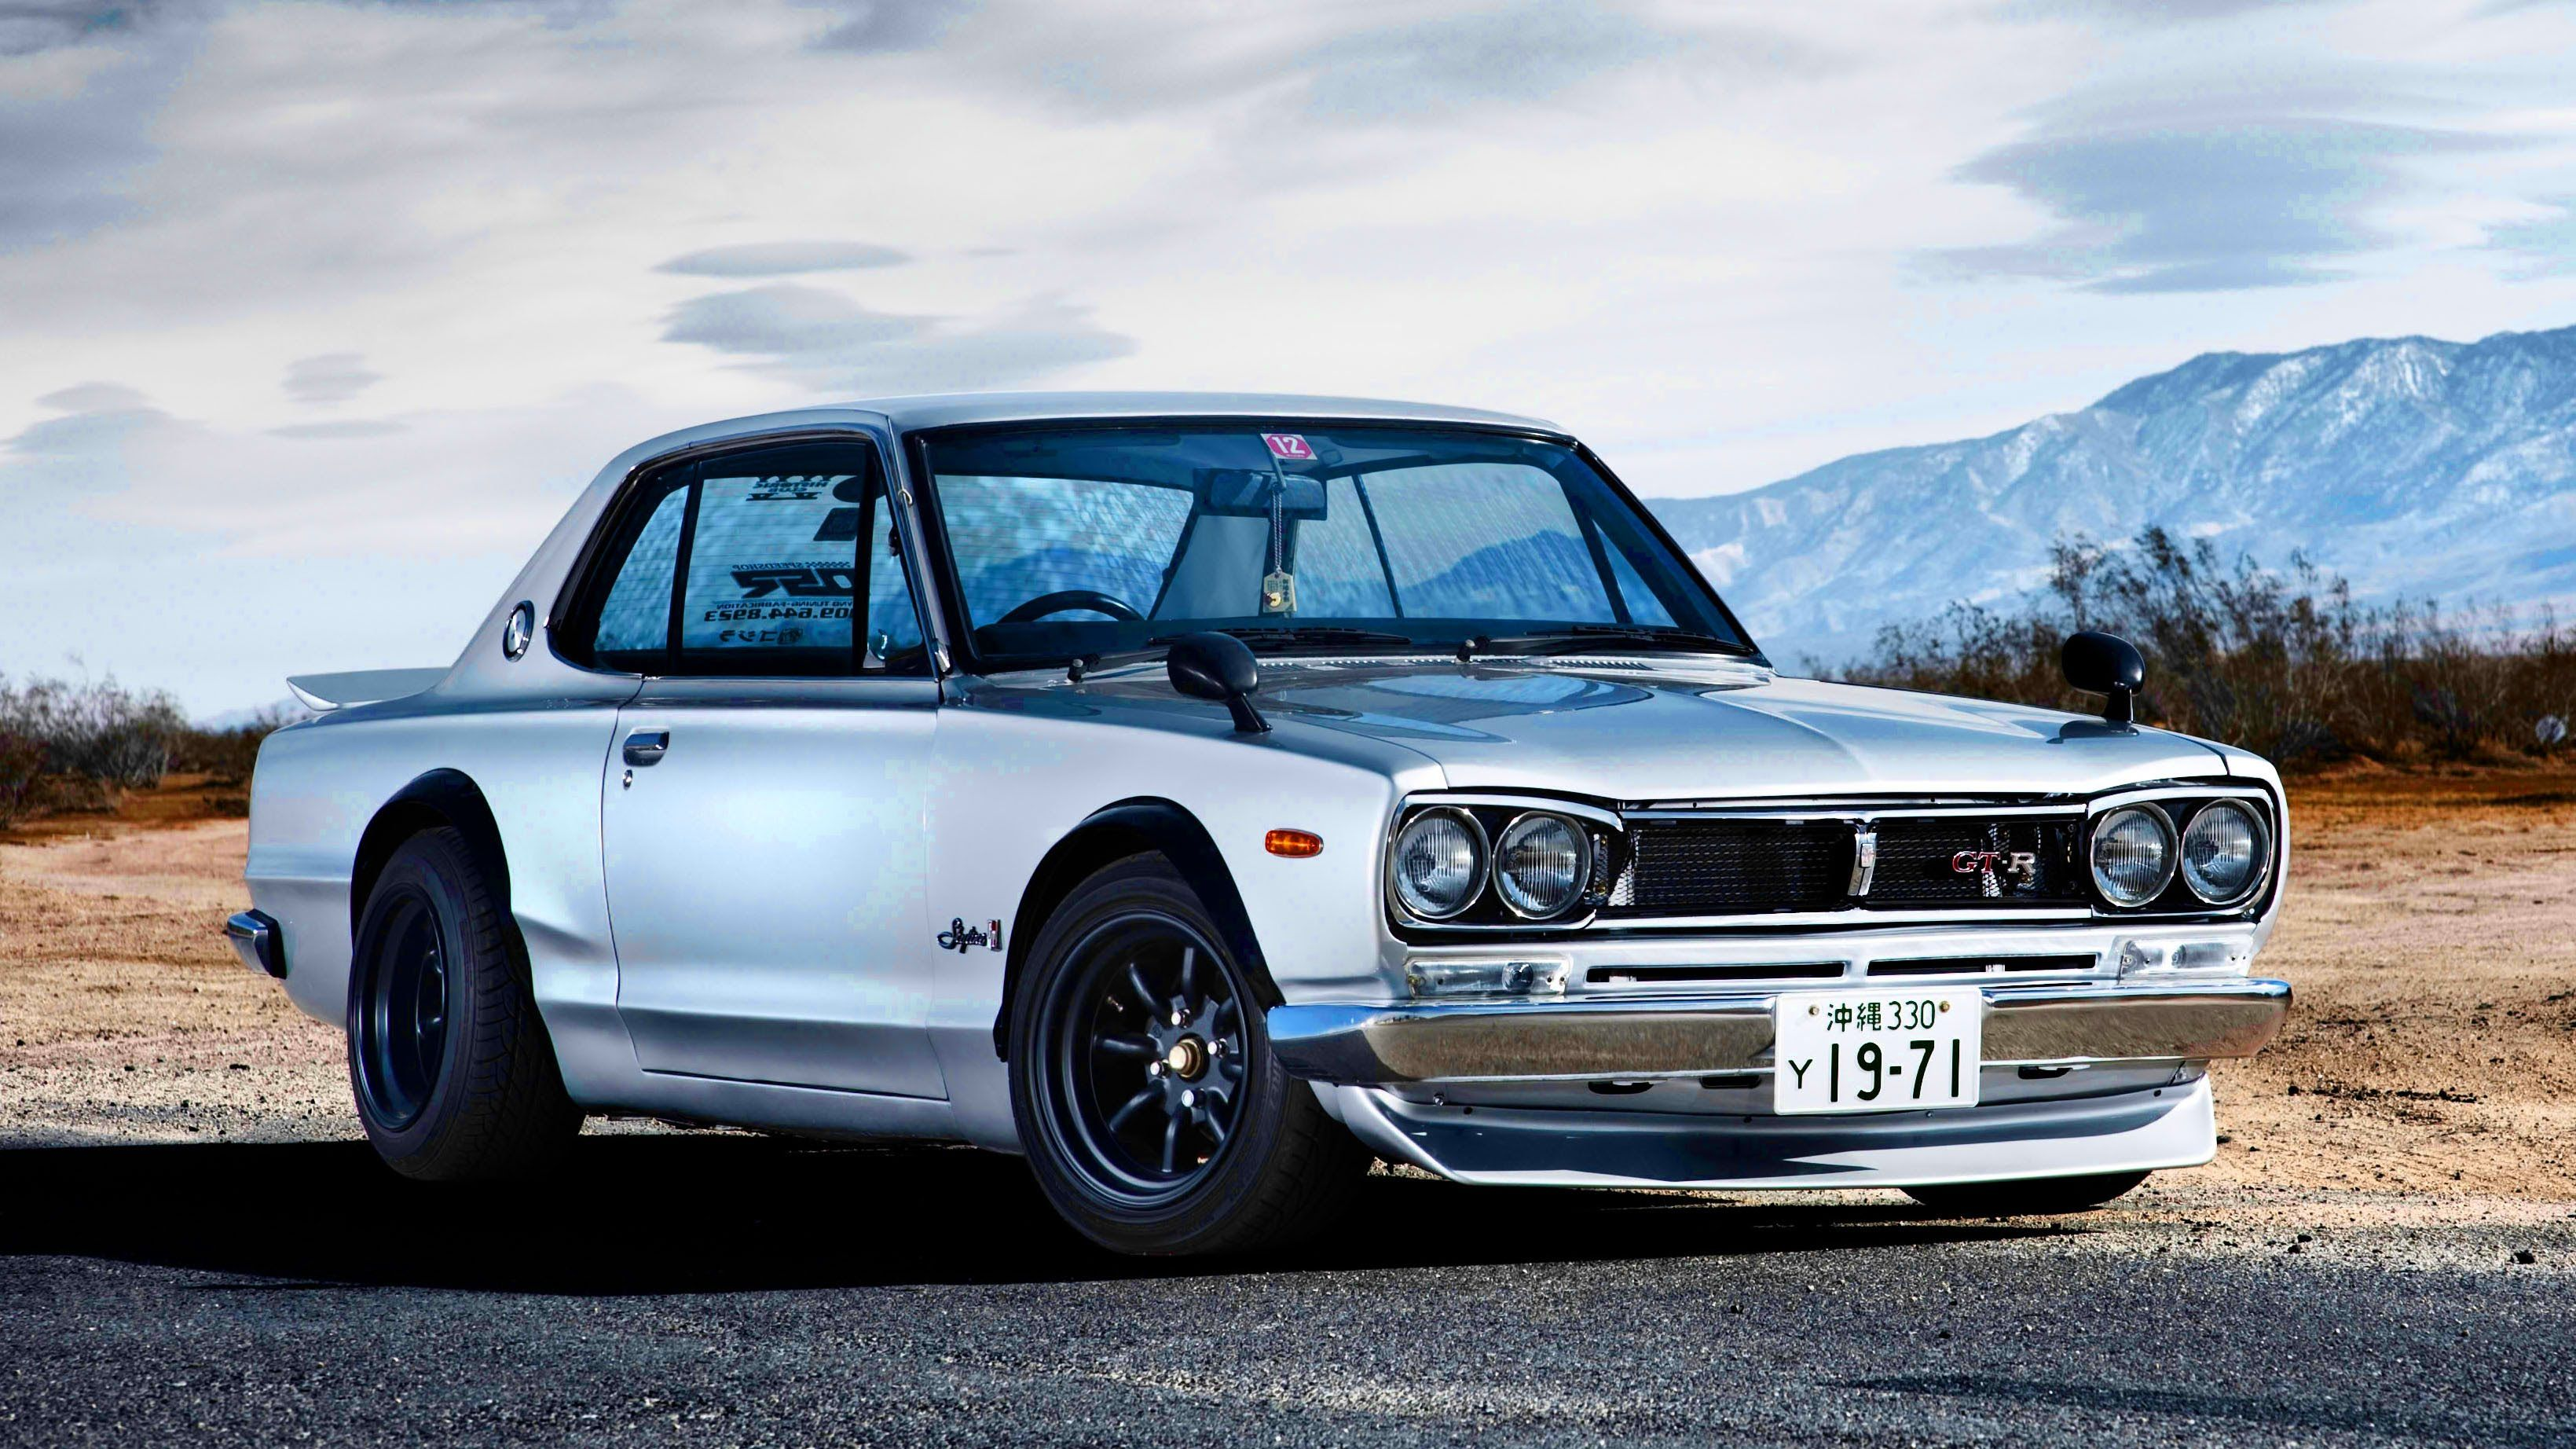 Httpsgooglesearchqdatsun gtr japan old japan cars ultimate nissan skyline gt r hakosuka sound compilation vanachro Gallery